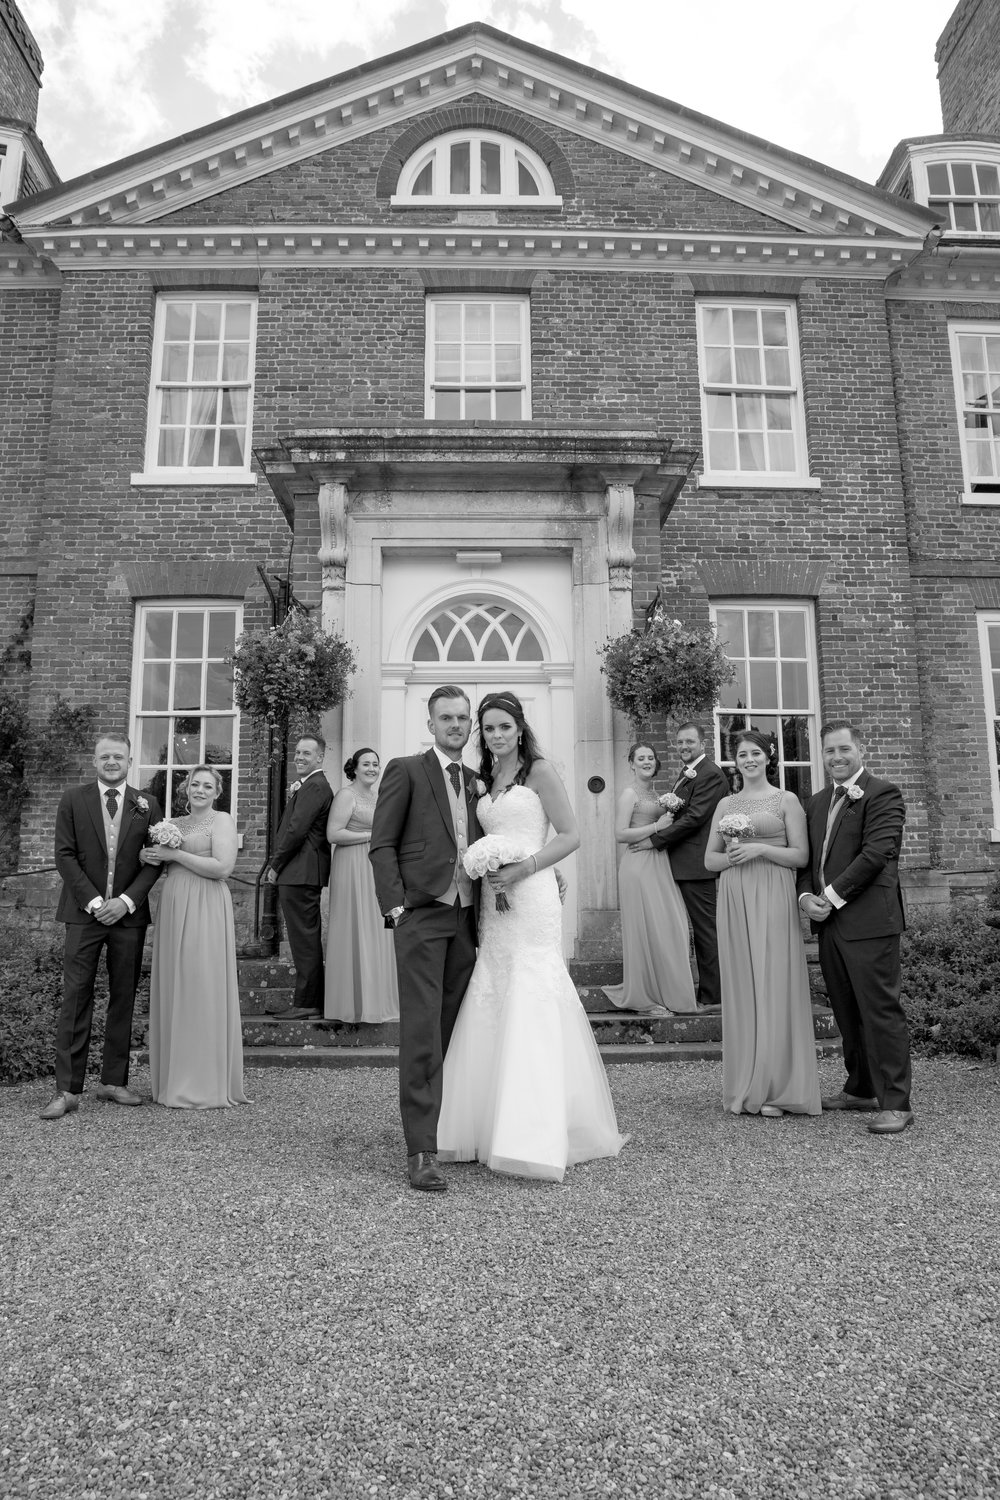 groomsmen and bridesmaids chilston park